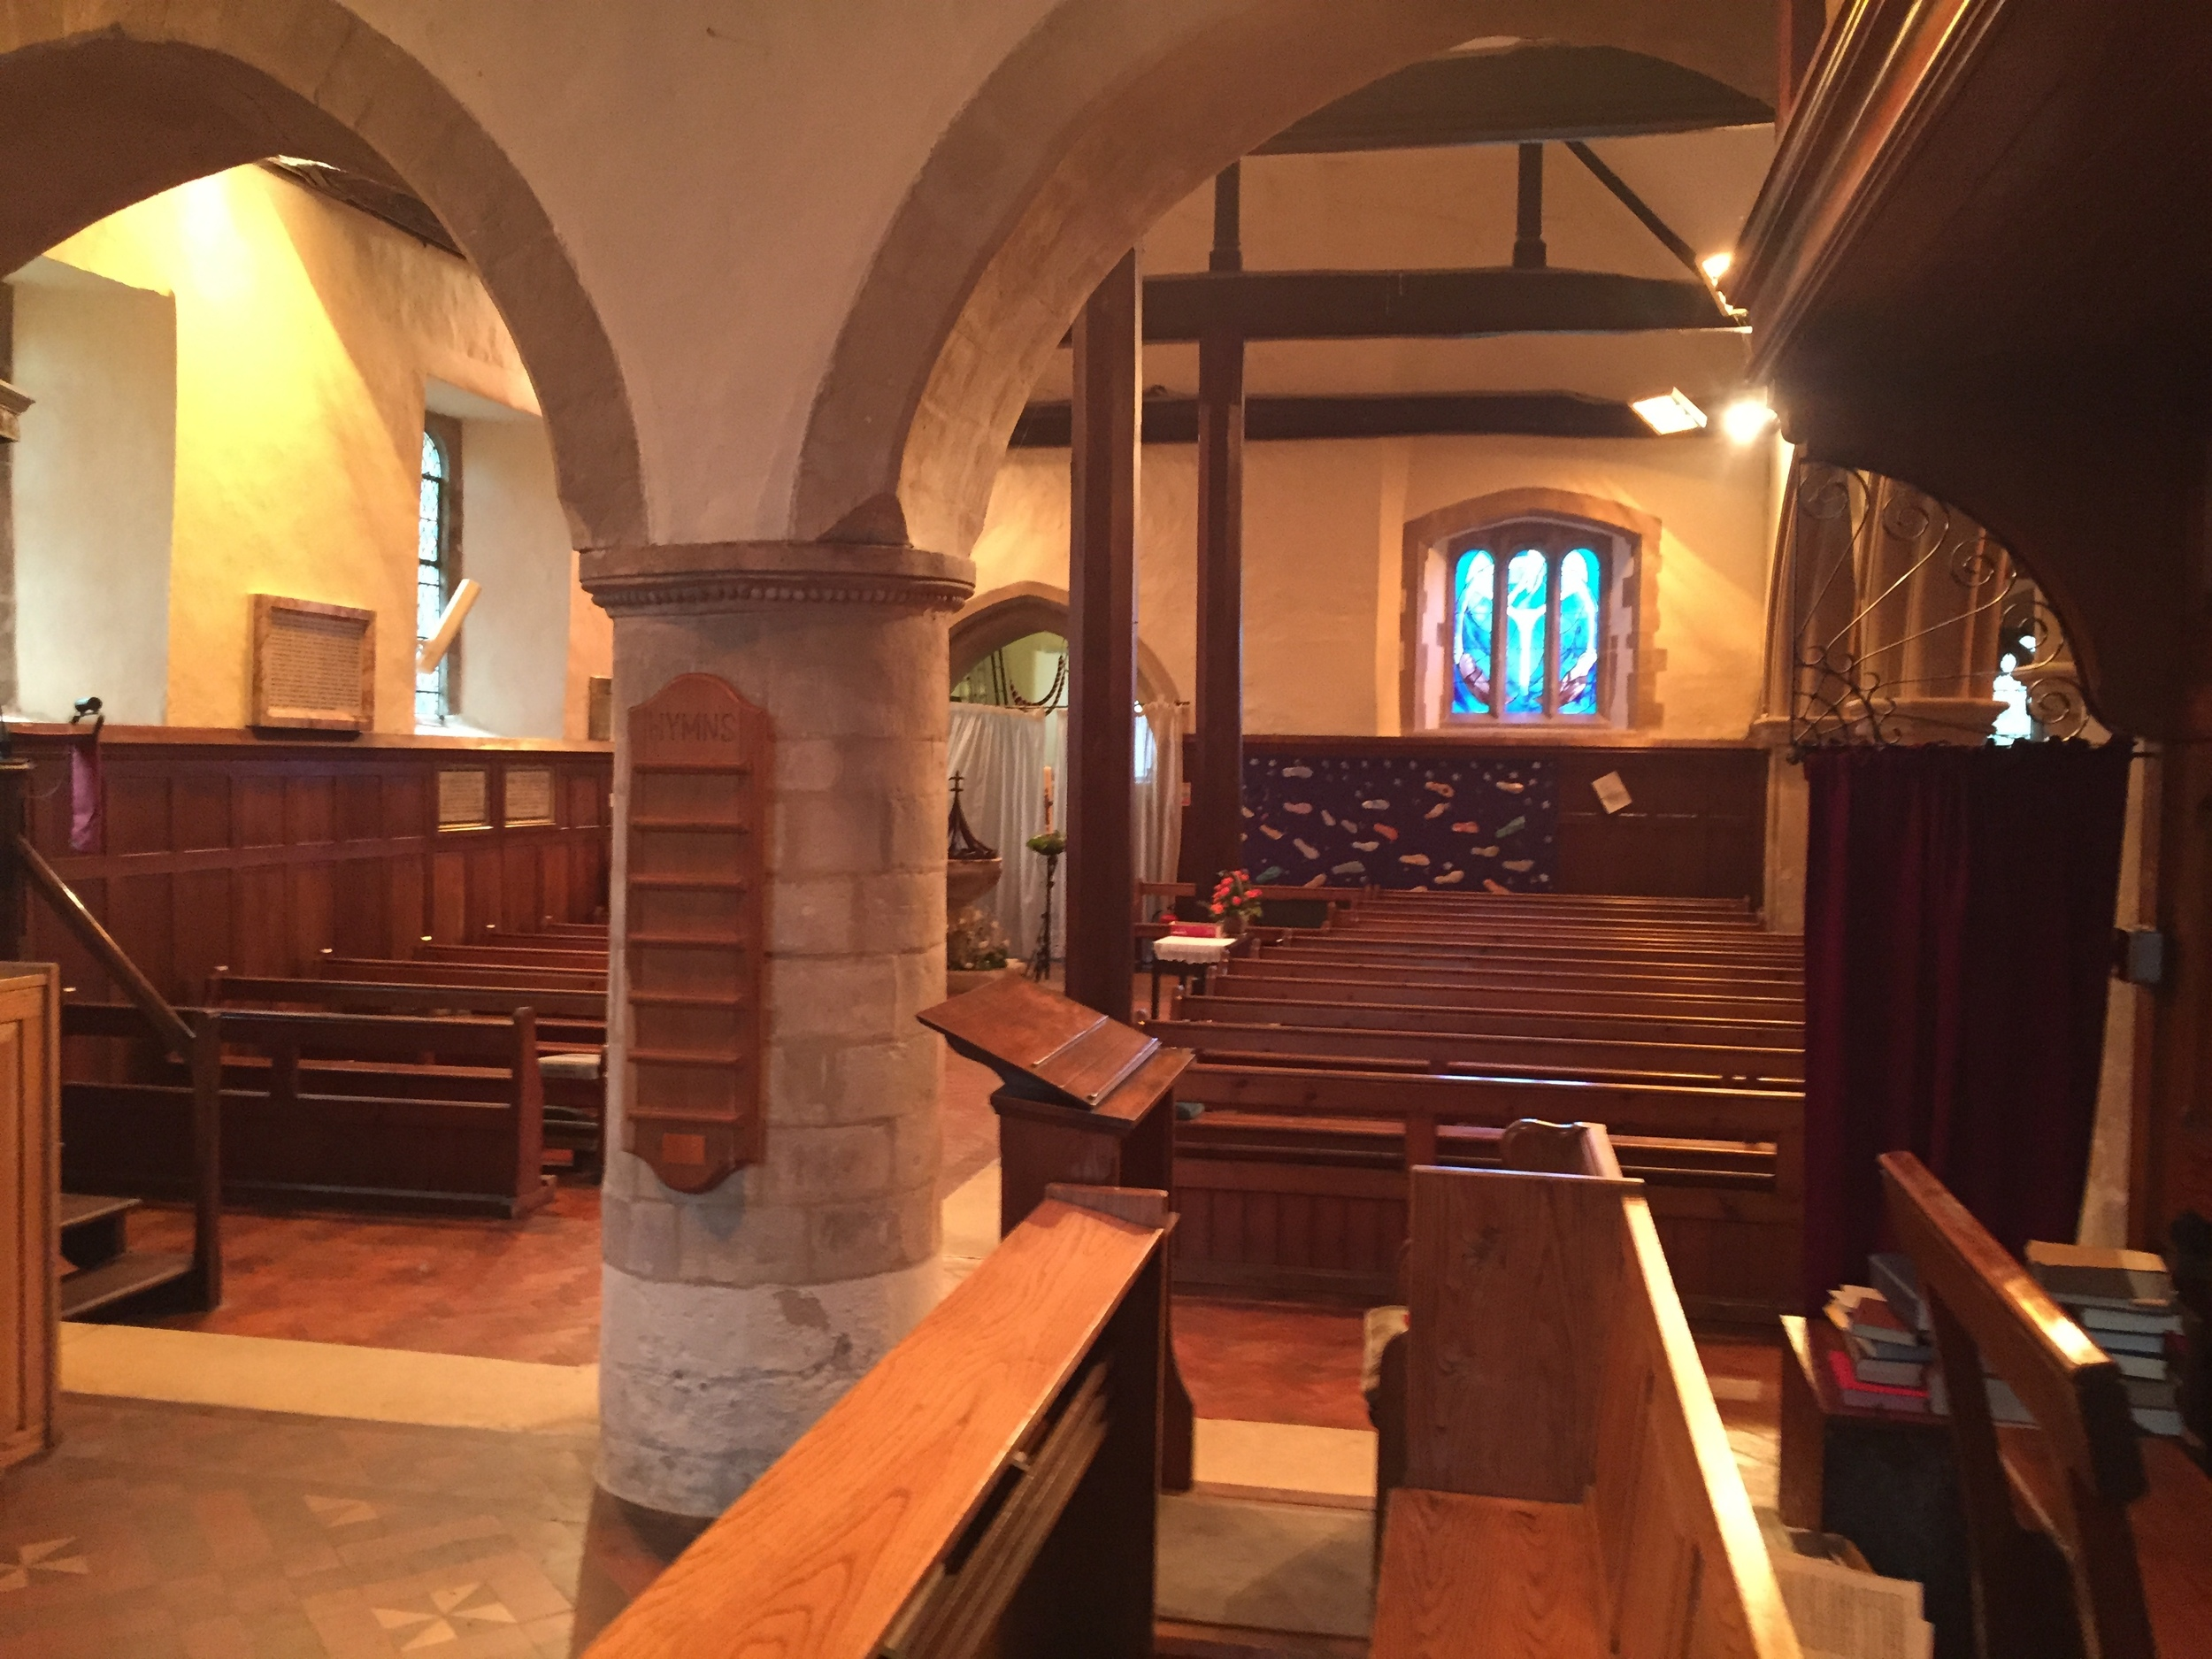 The interior of the church at Upper Clatford, Hampshire, where Stephen Hopkins was baptized in 1581.